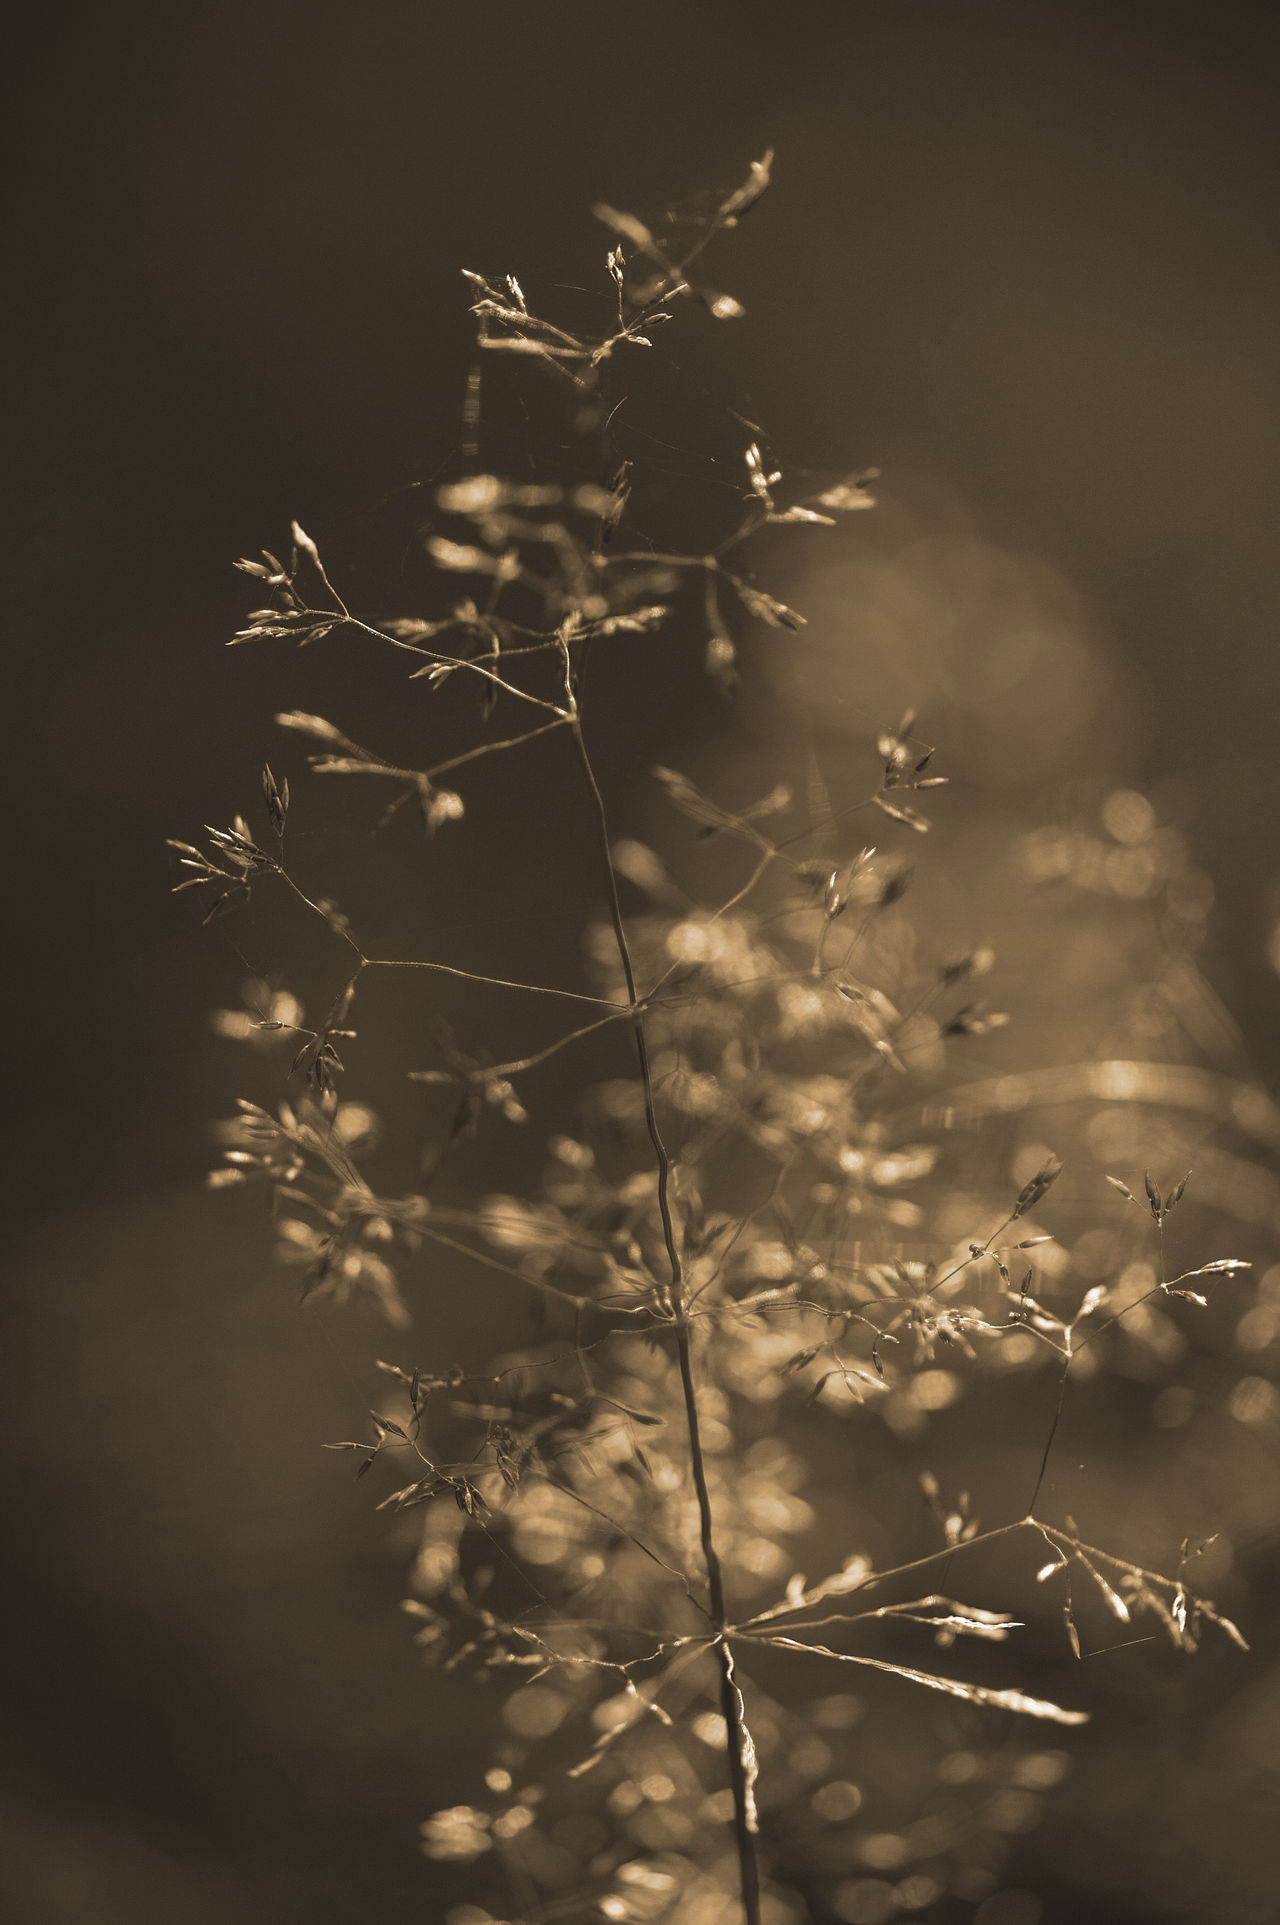 Blurred golden common bent in summer Abstract Art Artistic Background Beauty In Nature Bent Blank Blur Blurry Bokeh Closeup Common Delicate Empty Fragile Golden Grass Grassy Light Nature No People Outdoors Postcard Space Wild EyeEmNewHere Miles Away